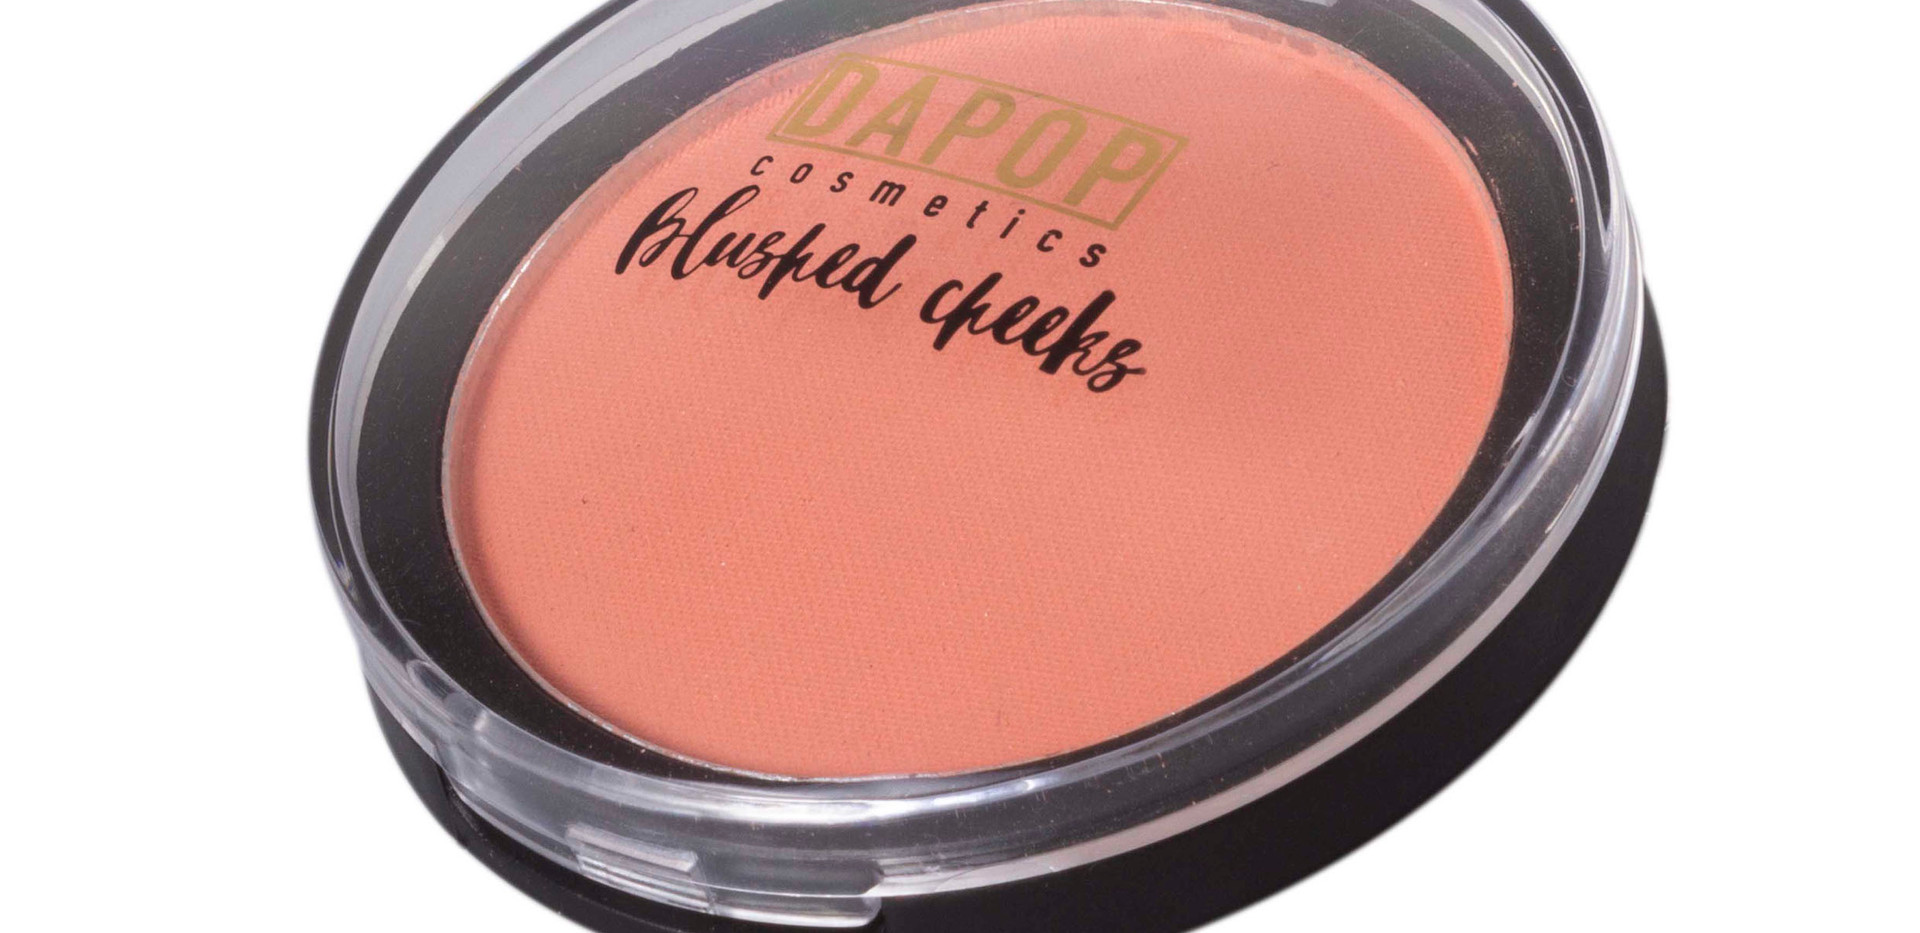 Blush Blushed Cheeks Dapop - HB96631